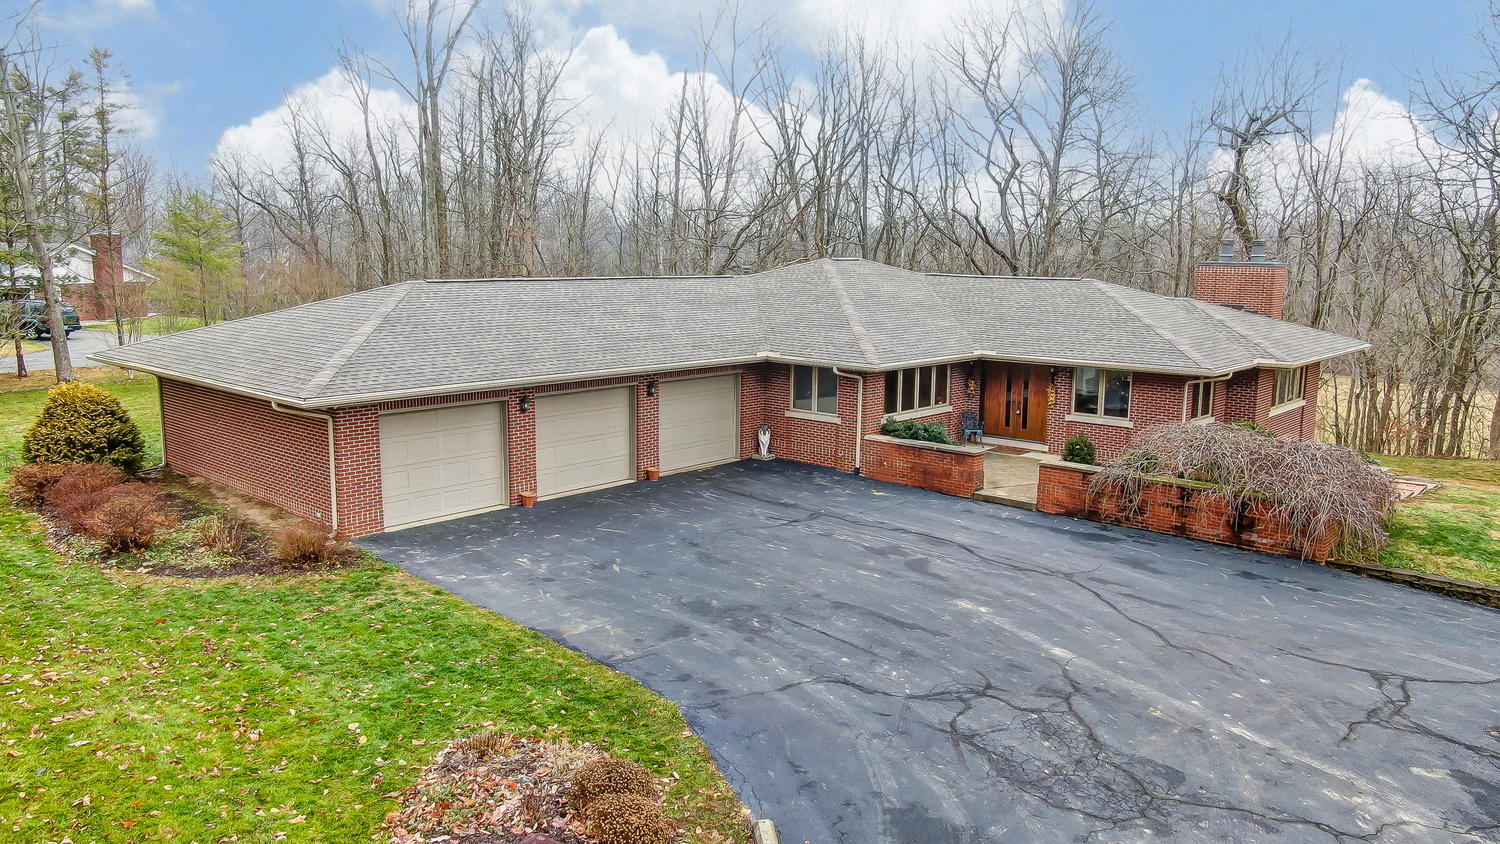 11420 Walnut Woods Lane Property Photo - Brookville, OH real estate listing